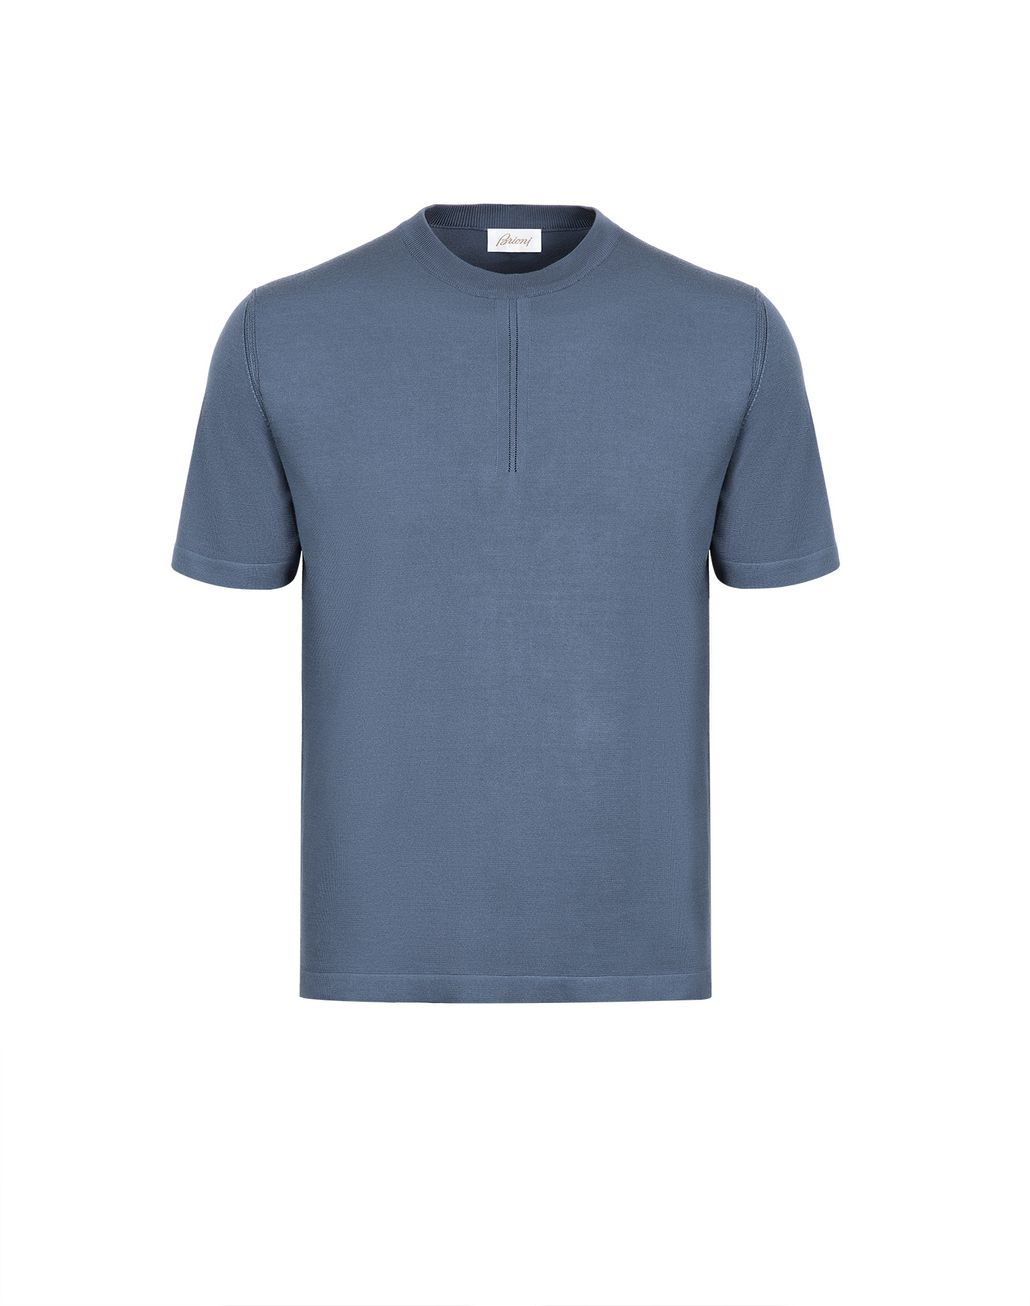 BRIONI Navy-Blue Silk Polo Shirt with Front Details T-Shirts & Polos Man f